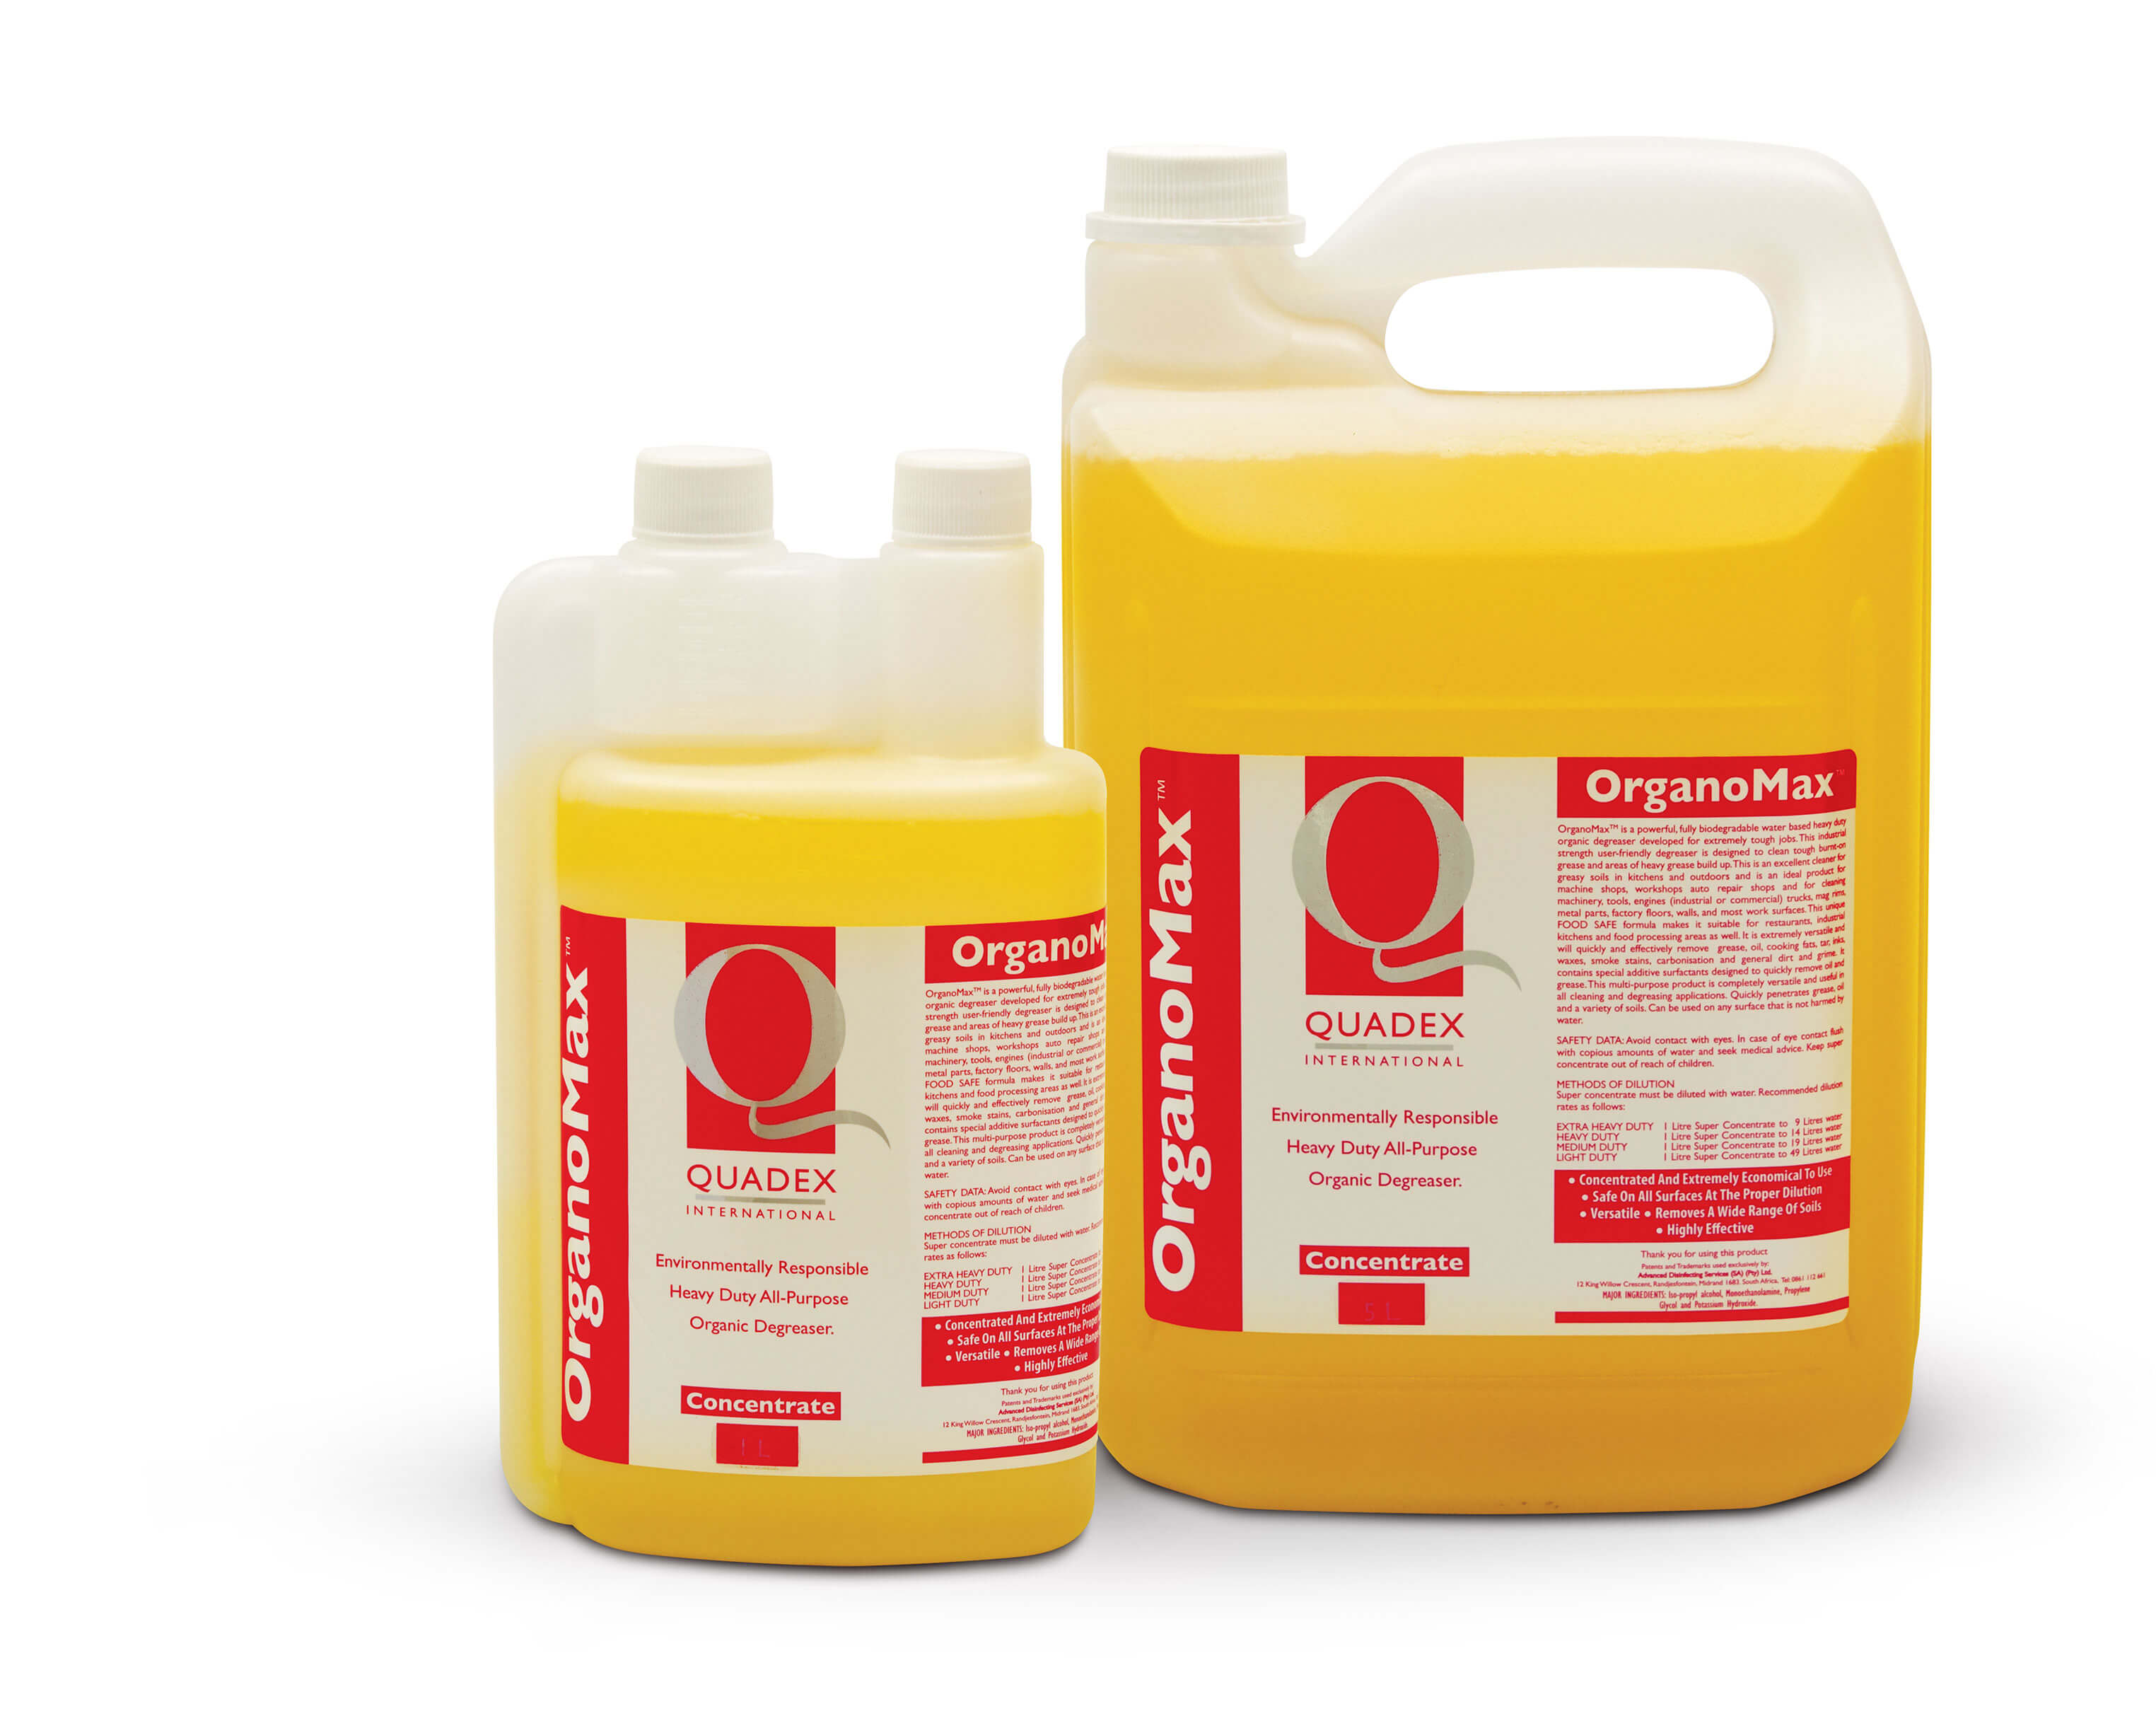 ORGANOMAX - POWERFUL BIODEGRADABLE ORGANIC DEGREASER